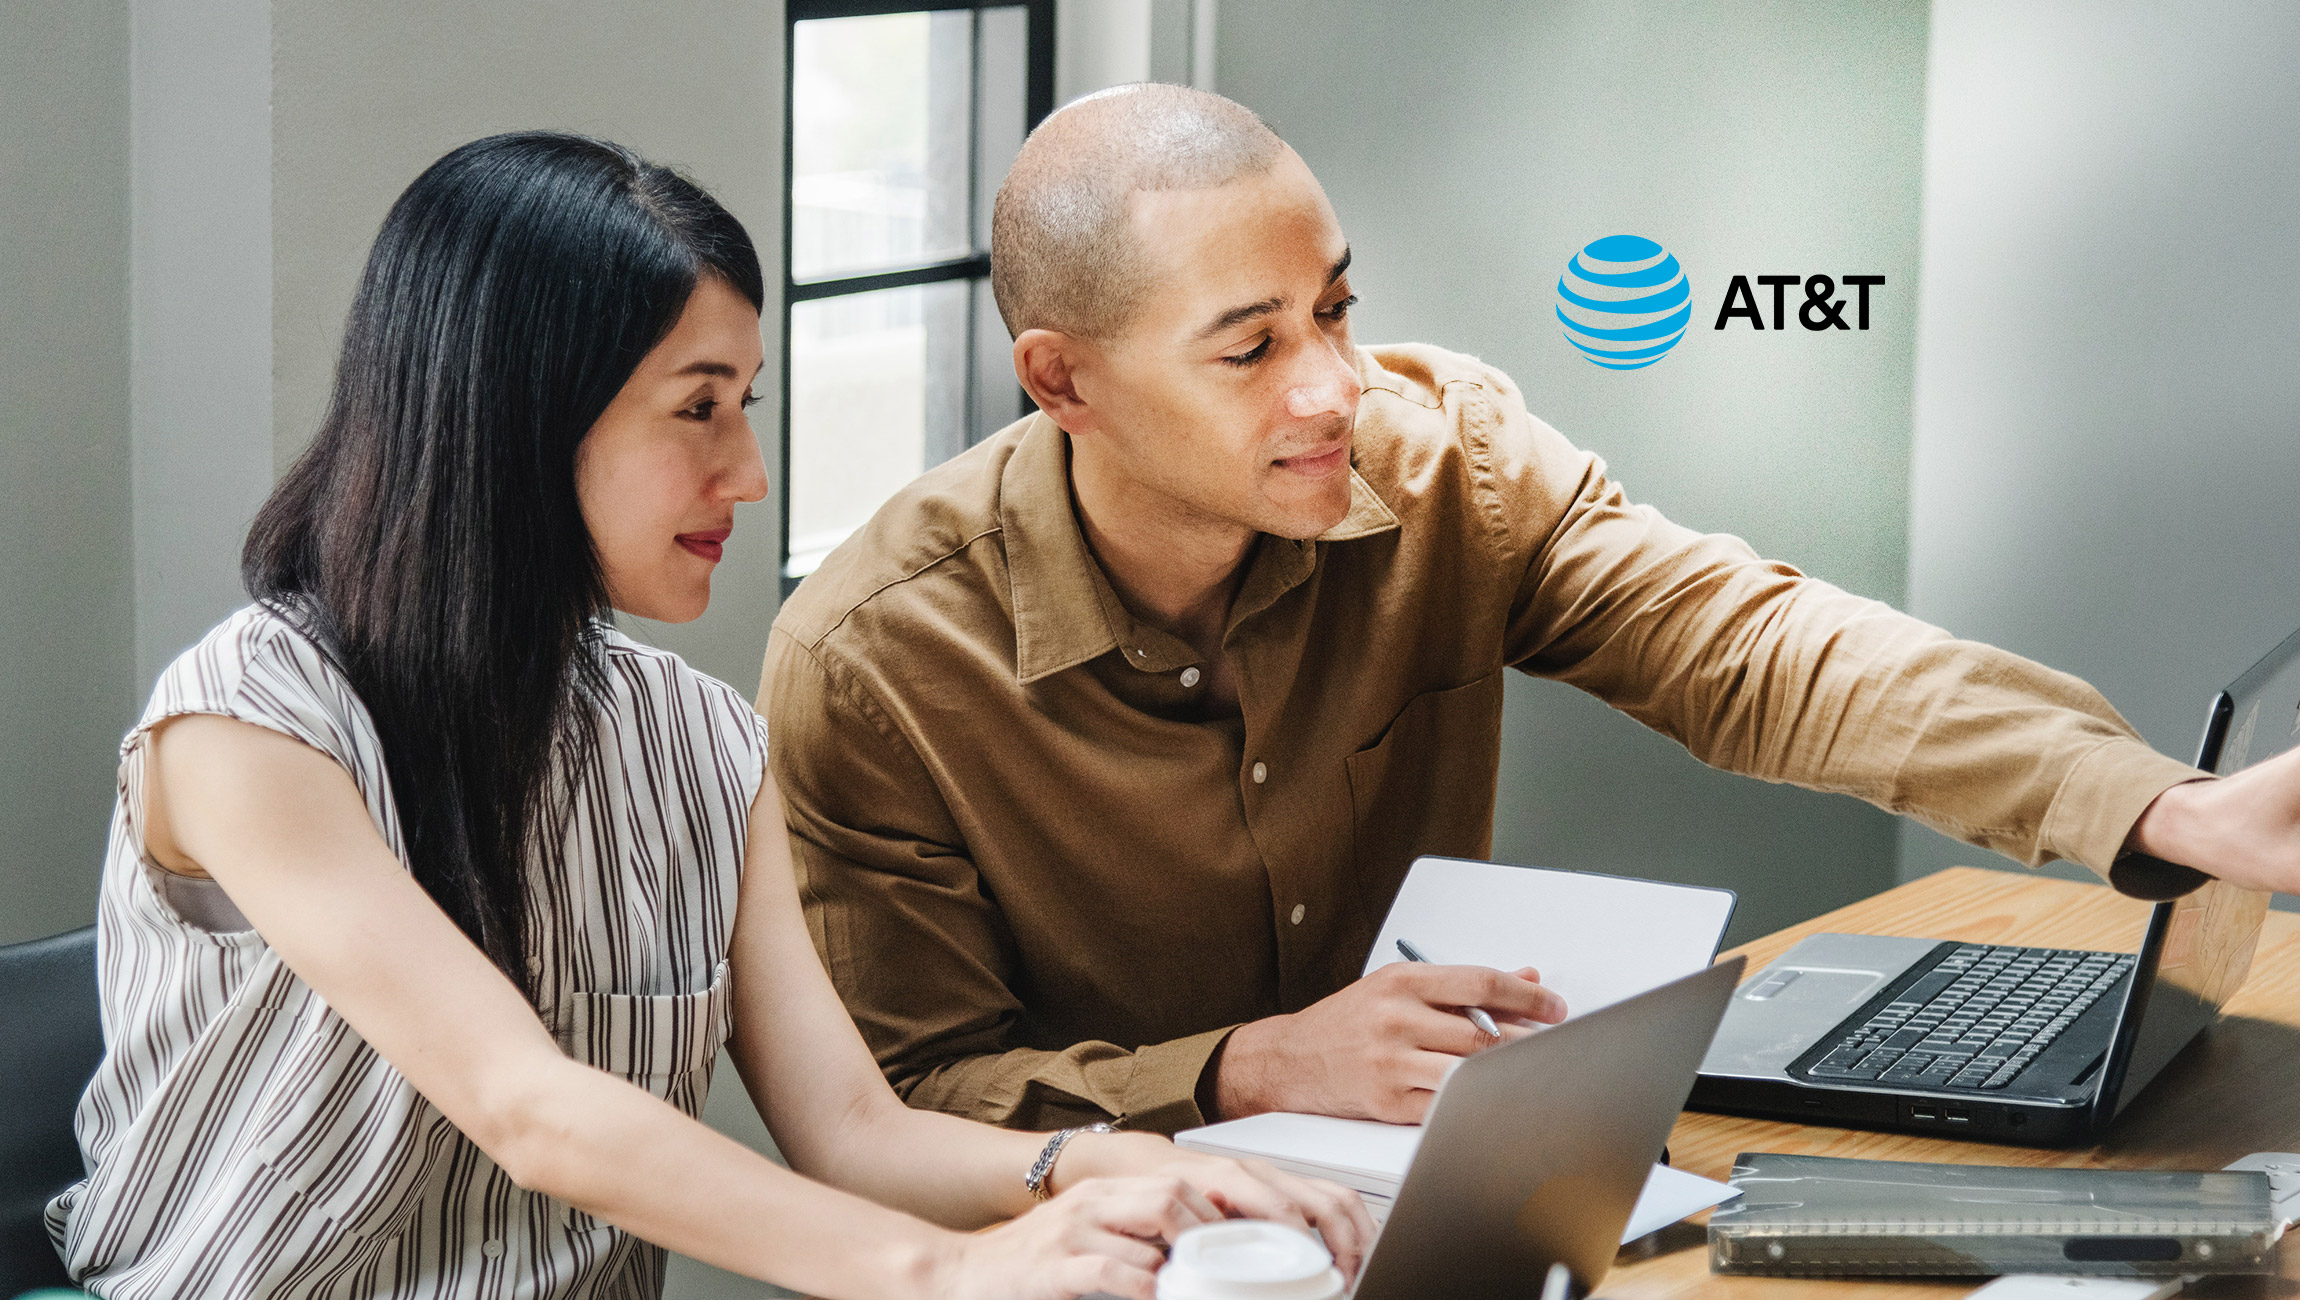 AT&T 'Fusion', A New Channel Sales Event, Kicks Off With Big Promises